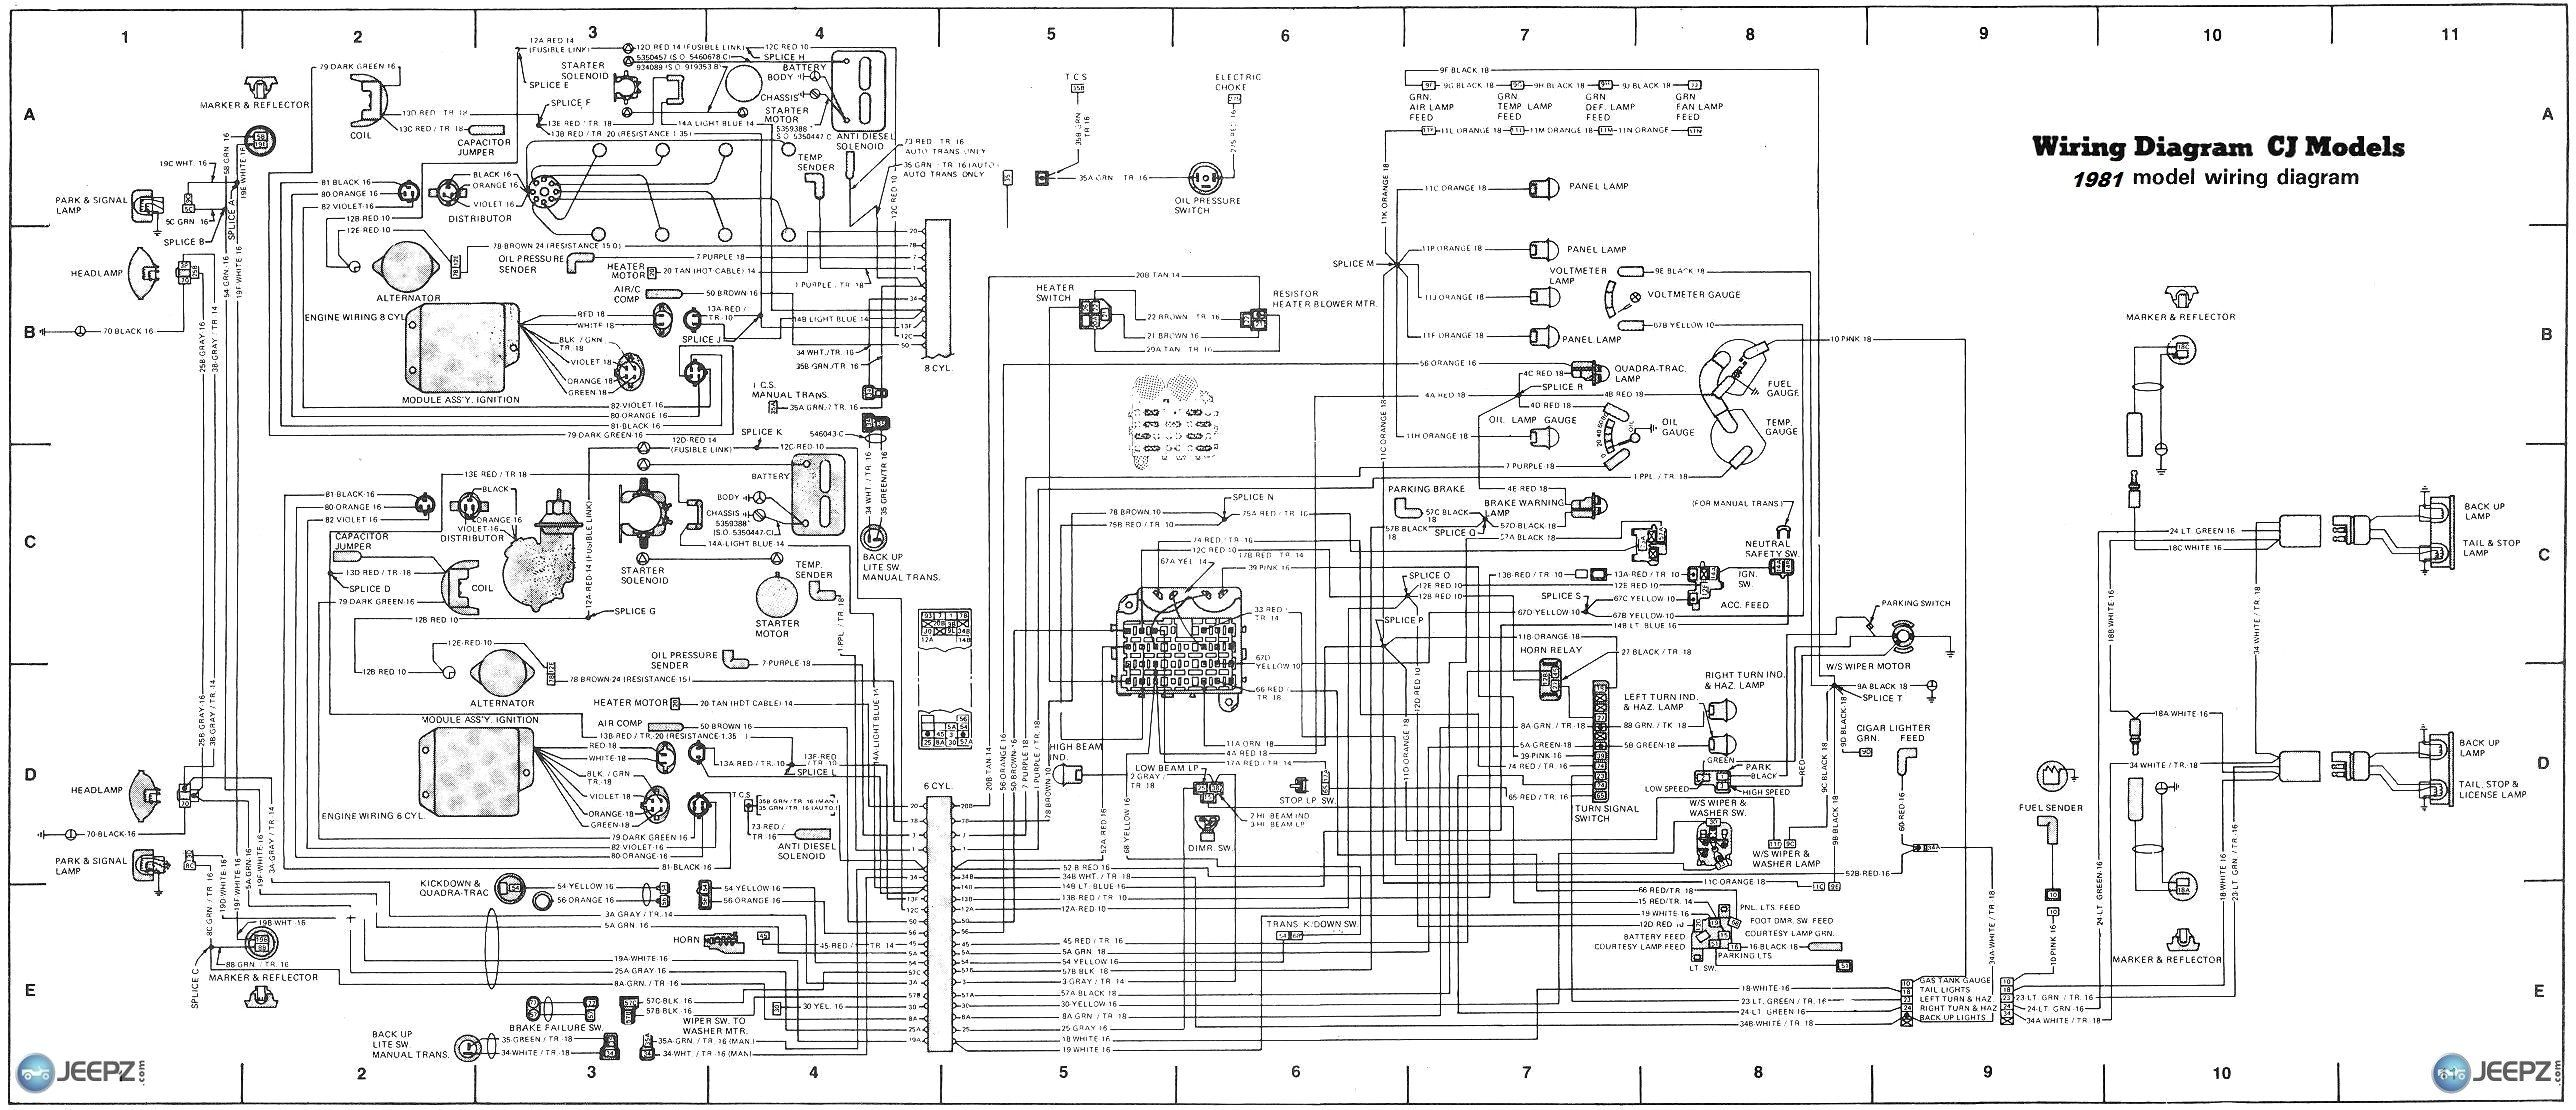 Jeep Scrambler Wiring Diagram Wiring Intended For 1990 Jeep Wrangler Wiring Diagram Fluo